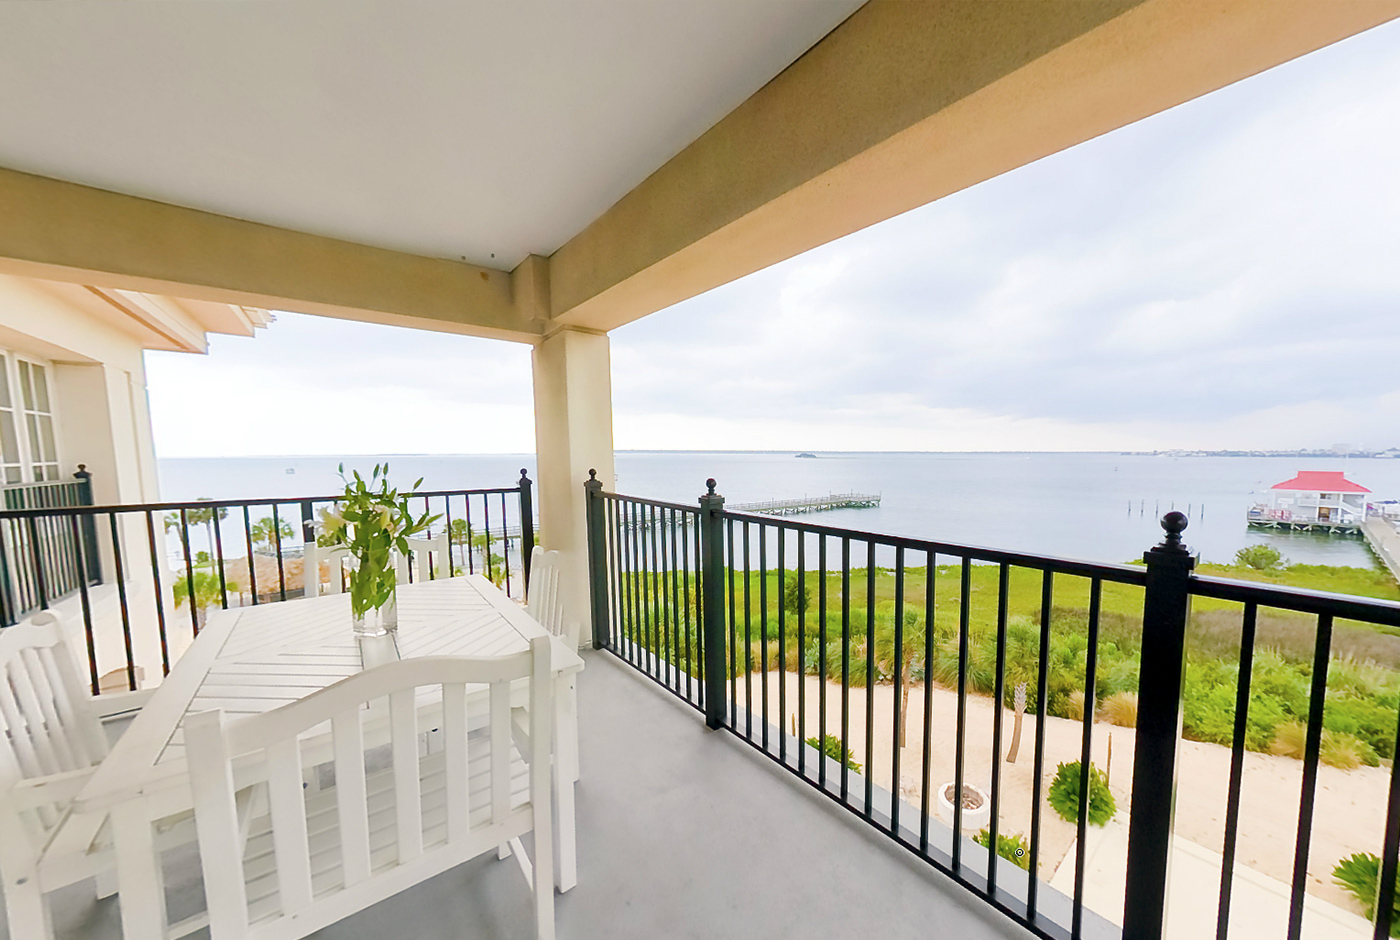 Oceanside Hotel Suite Balcony with Table